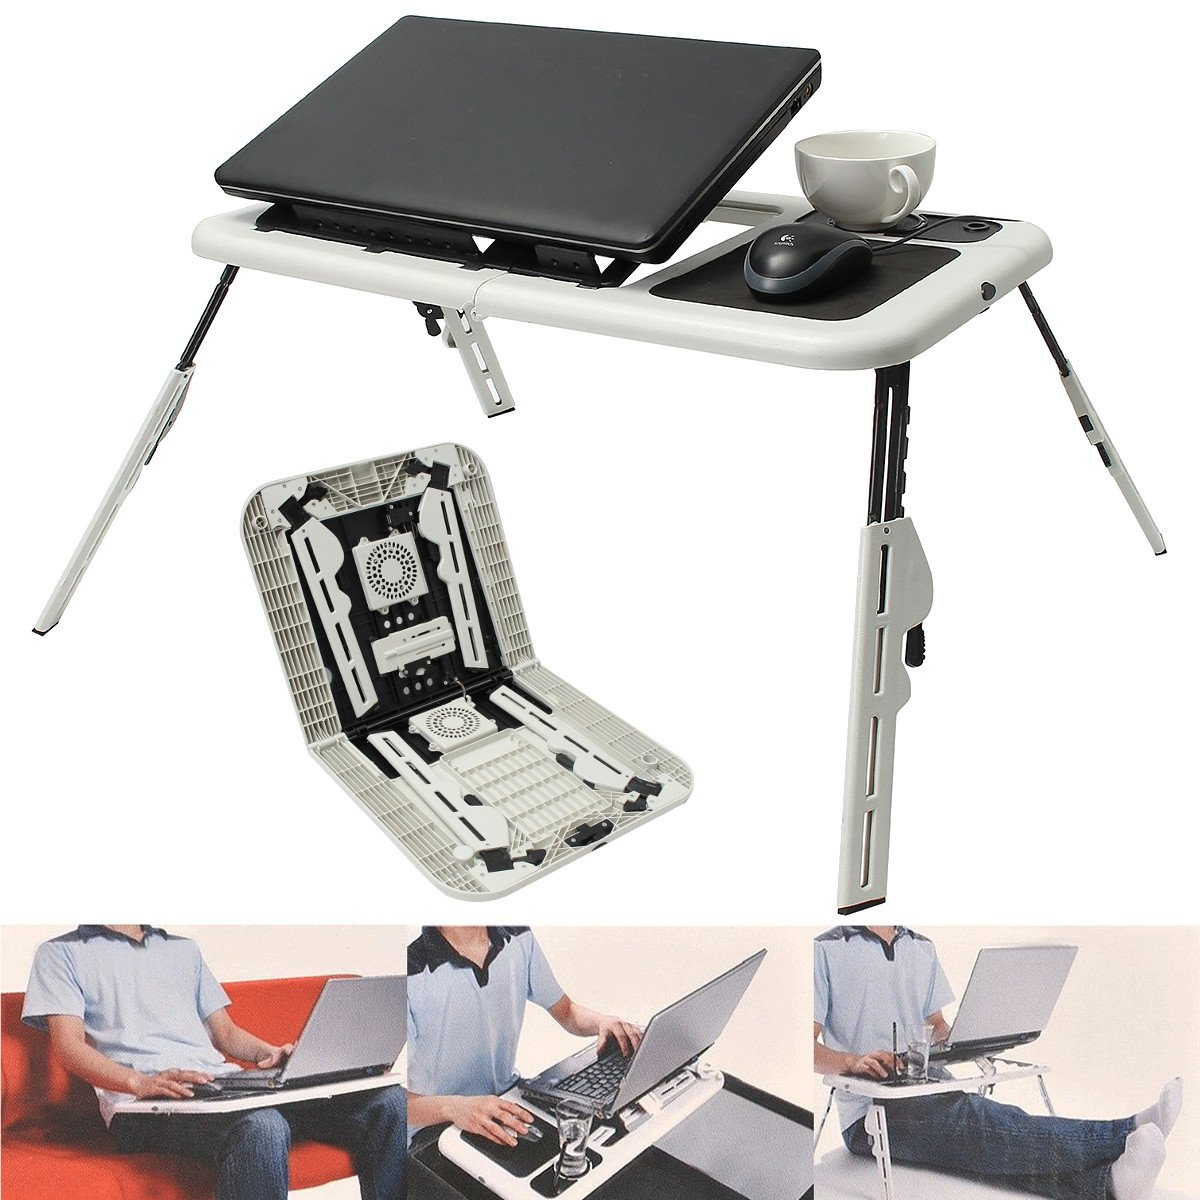 Laptop Desk Caveen 15.4'' Adjustable Laptop Table Notebook Computer Stands Portable Standing Bed Desk,USB Fan Foldable Sofa Breakfast Tray, Notebook Stand Reading Holder for Couch Floor